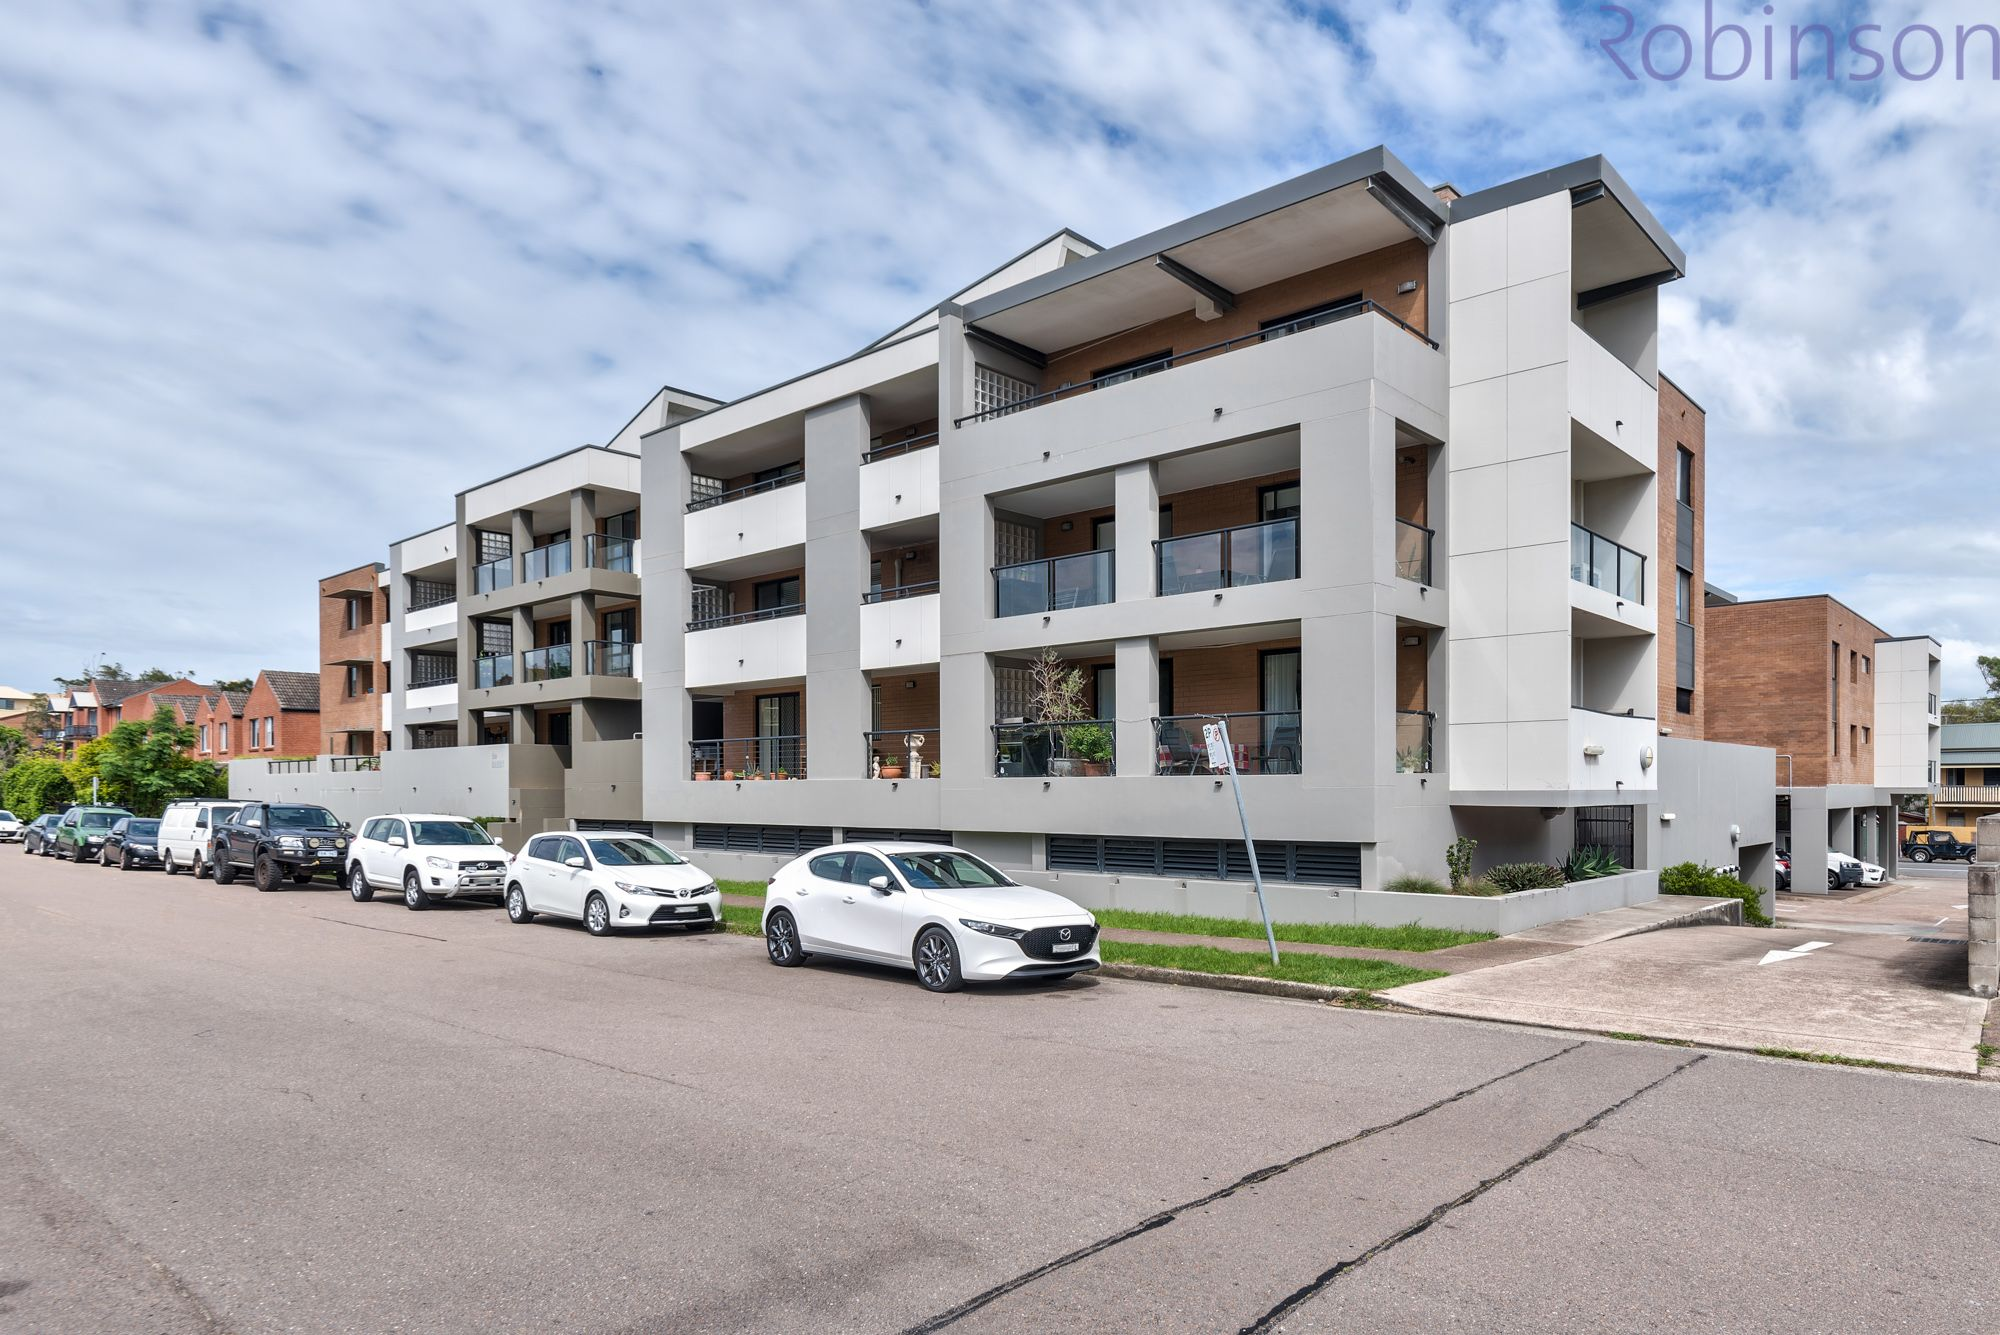 Level 3/309/185 Darby Street, Cooks Hill